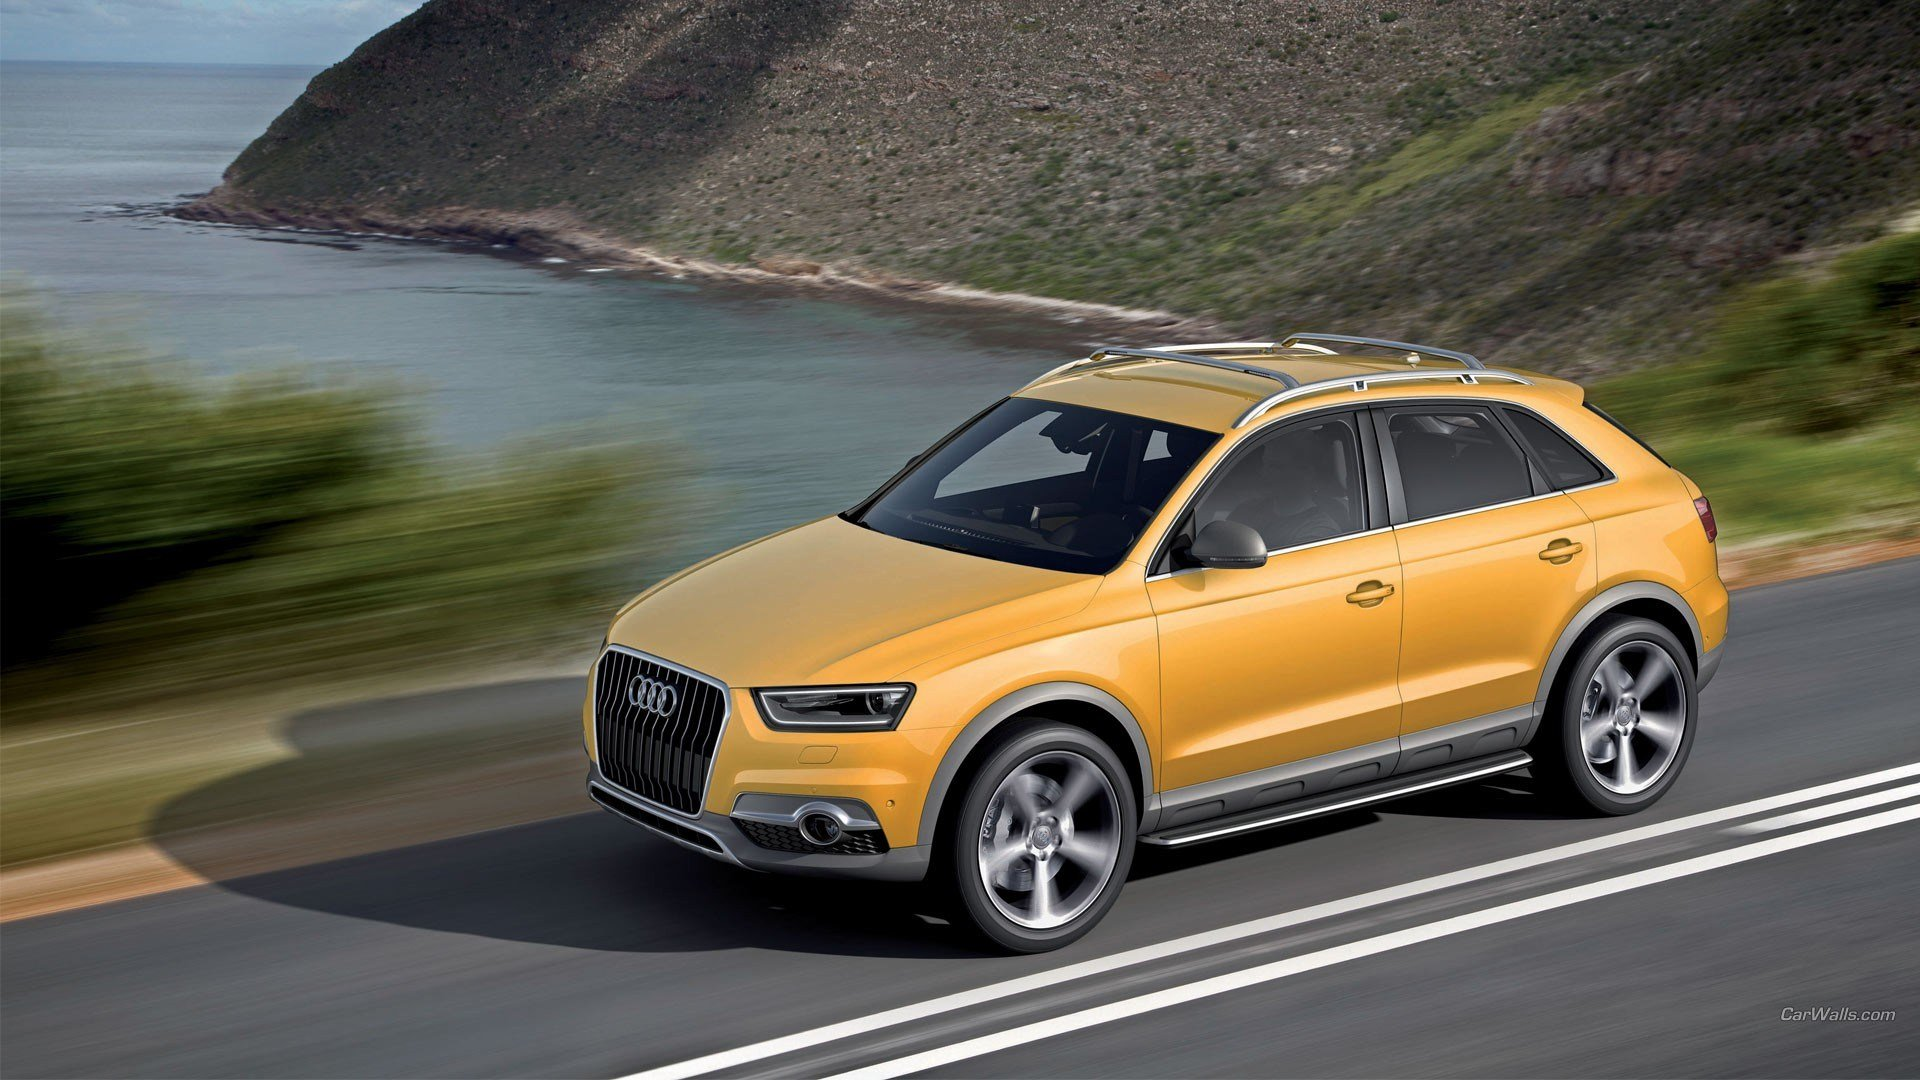 Latest Audi Q3 Car Audi Wallpapers Hd Desktop And Mobile Free Download